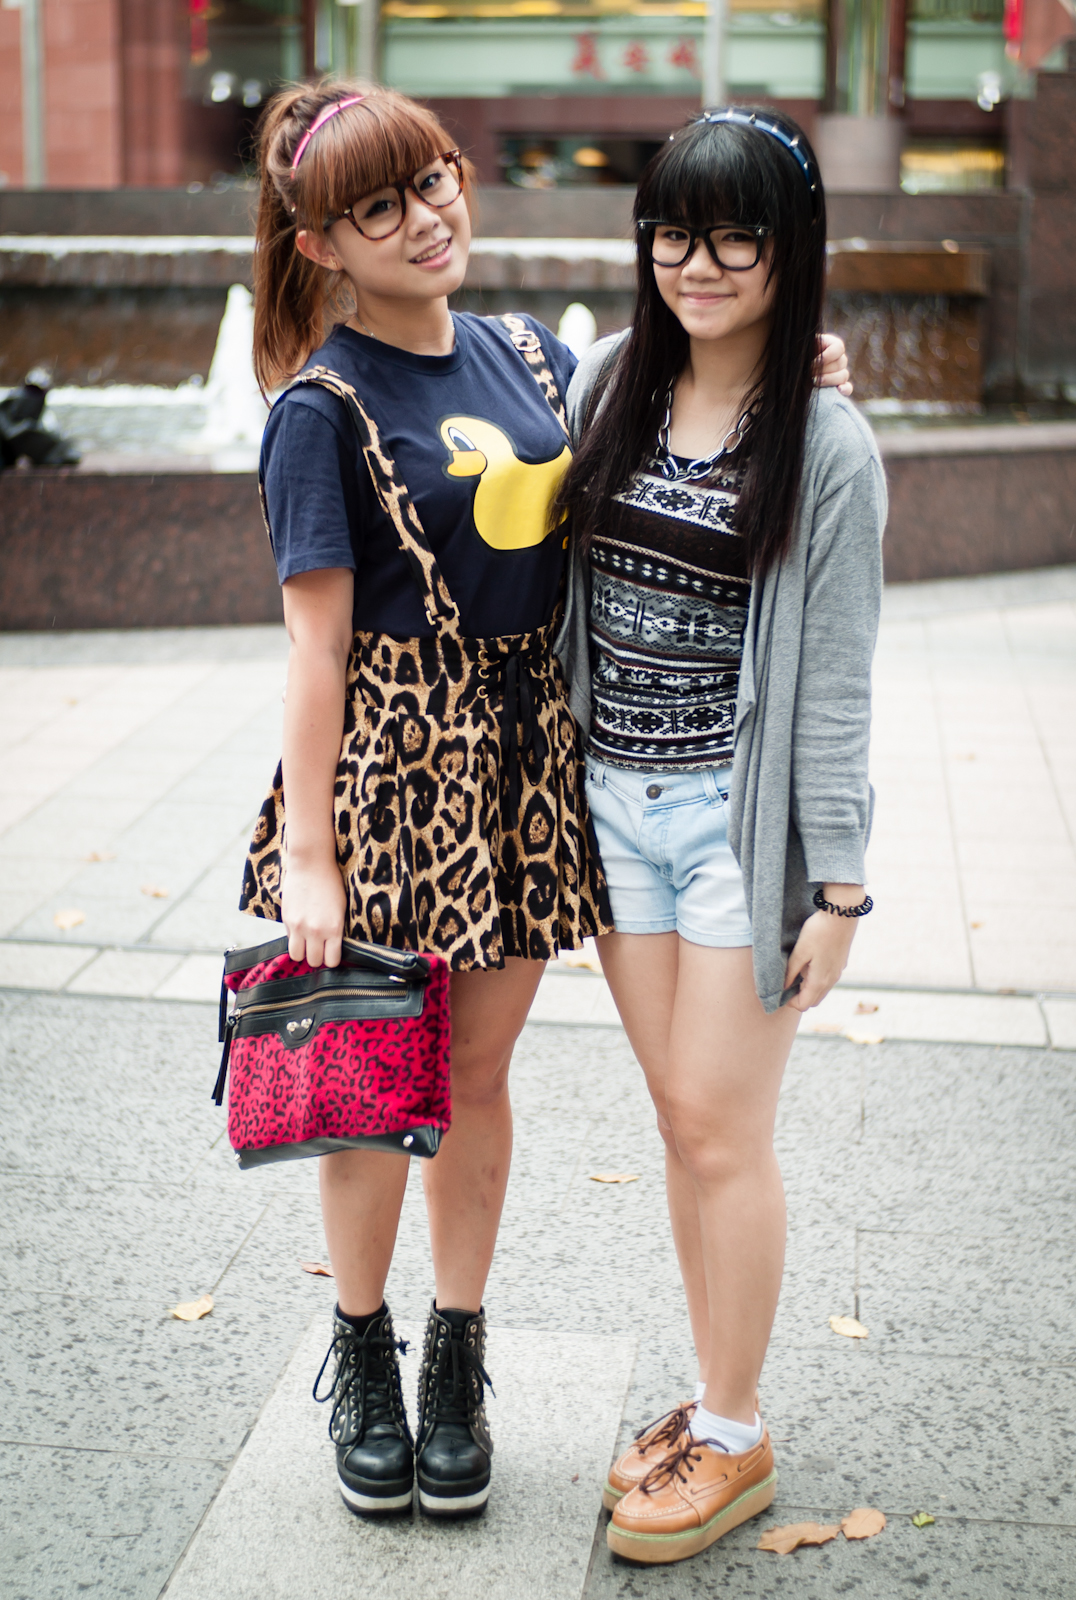 Two teenage girls in Orchard Road Singapore